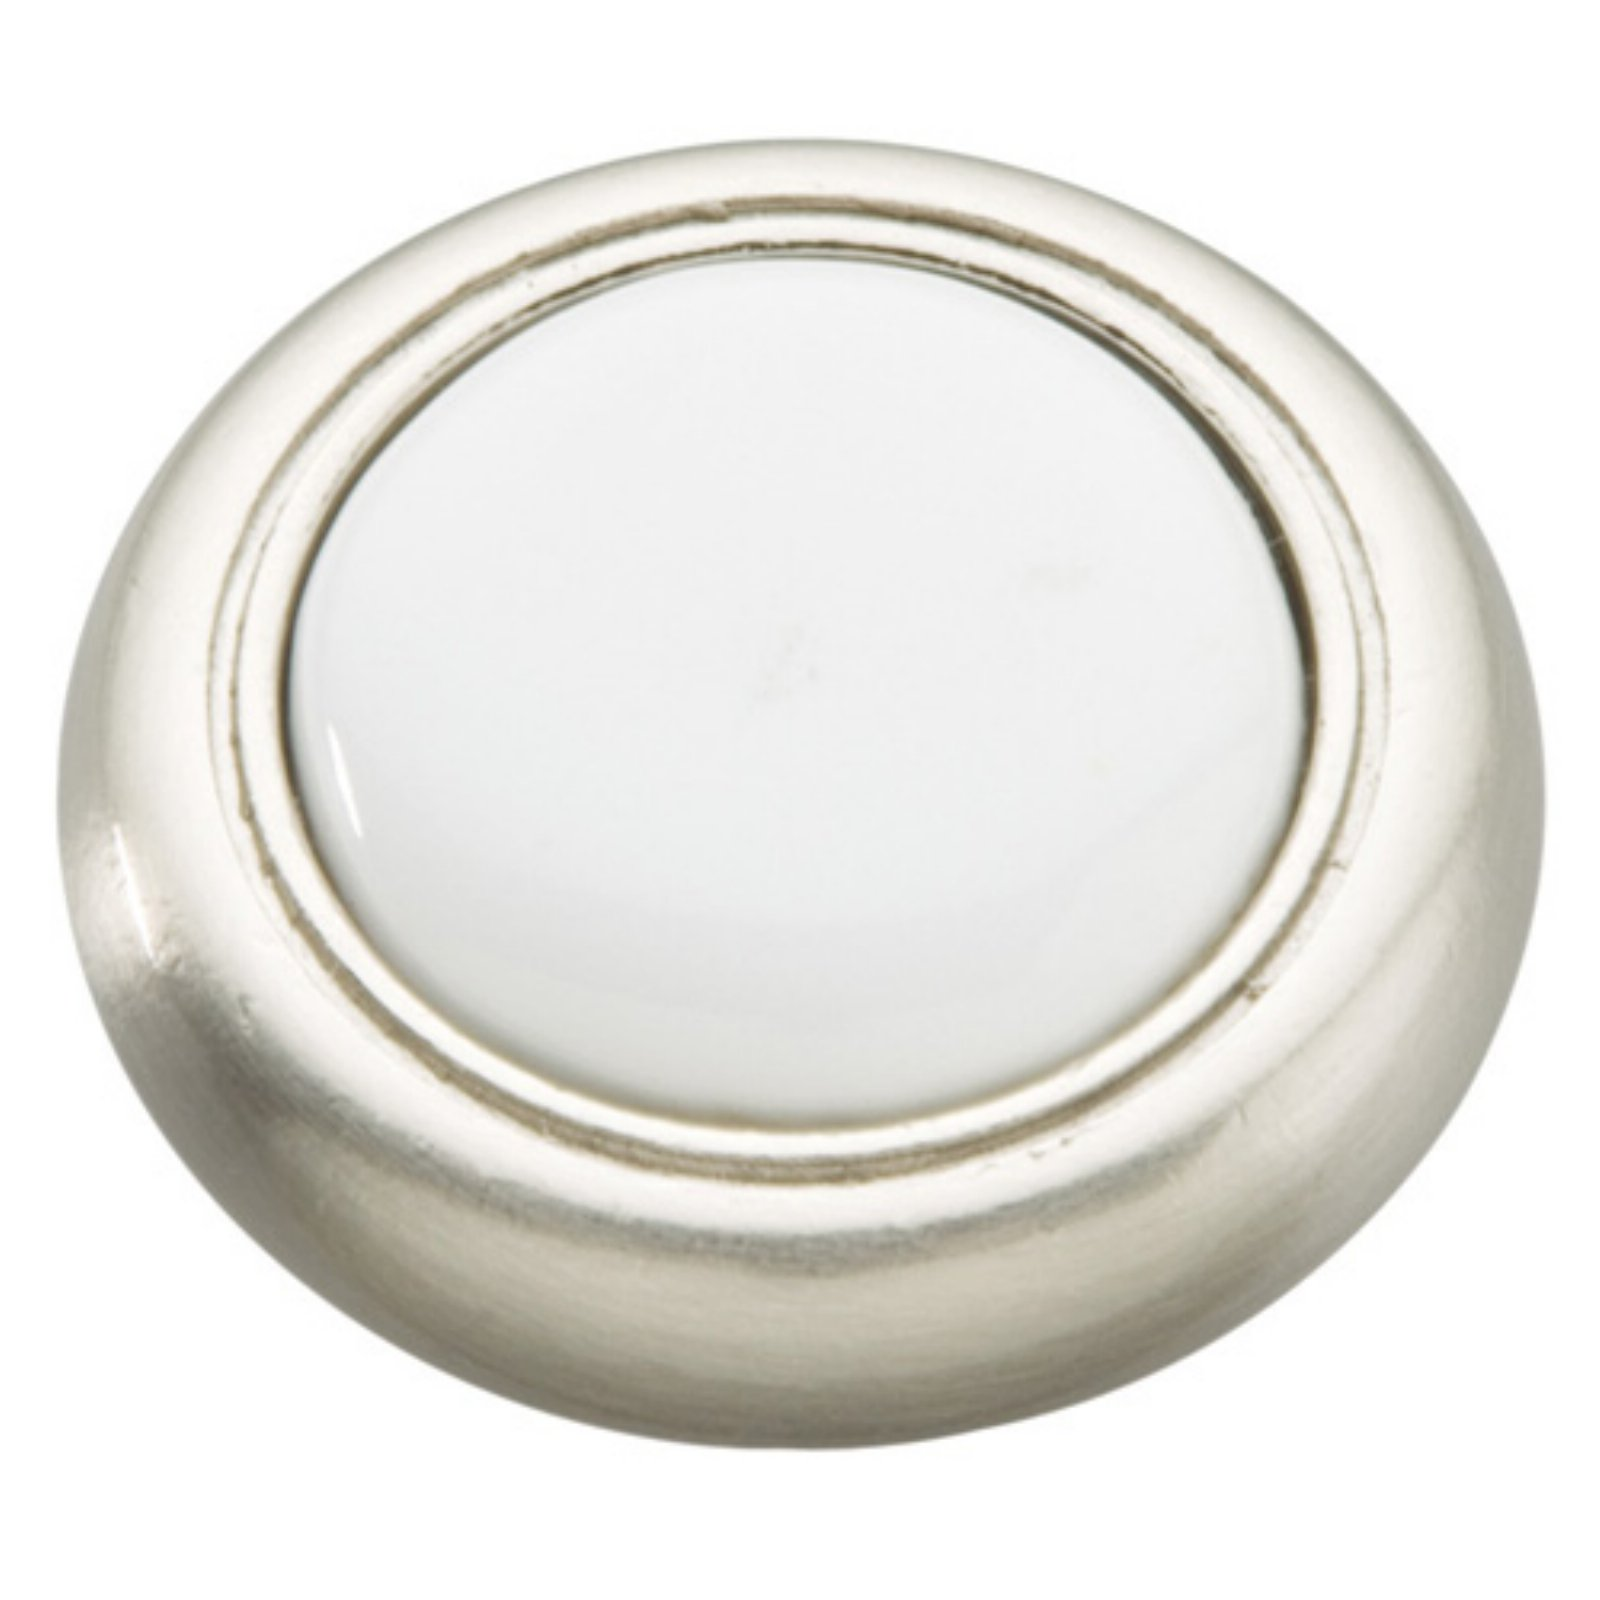 Hickory Hardware Tranquility Round Cabinet Knob